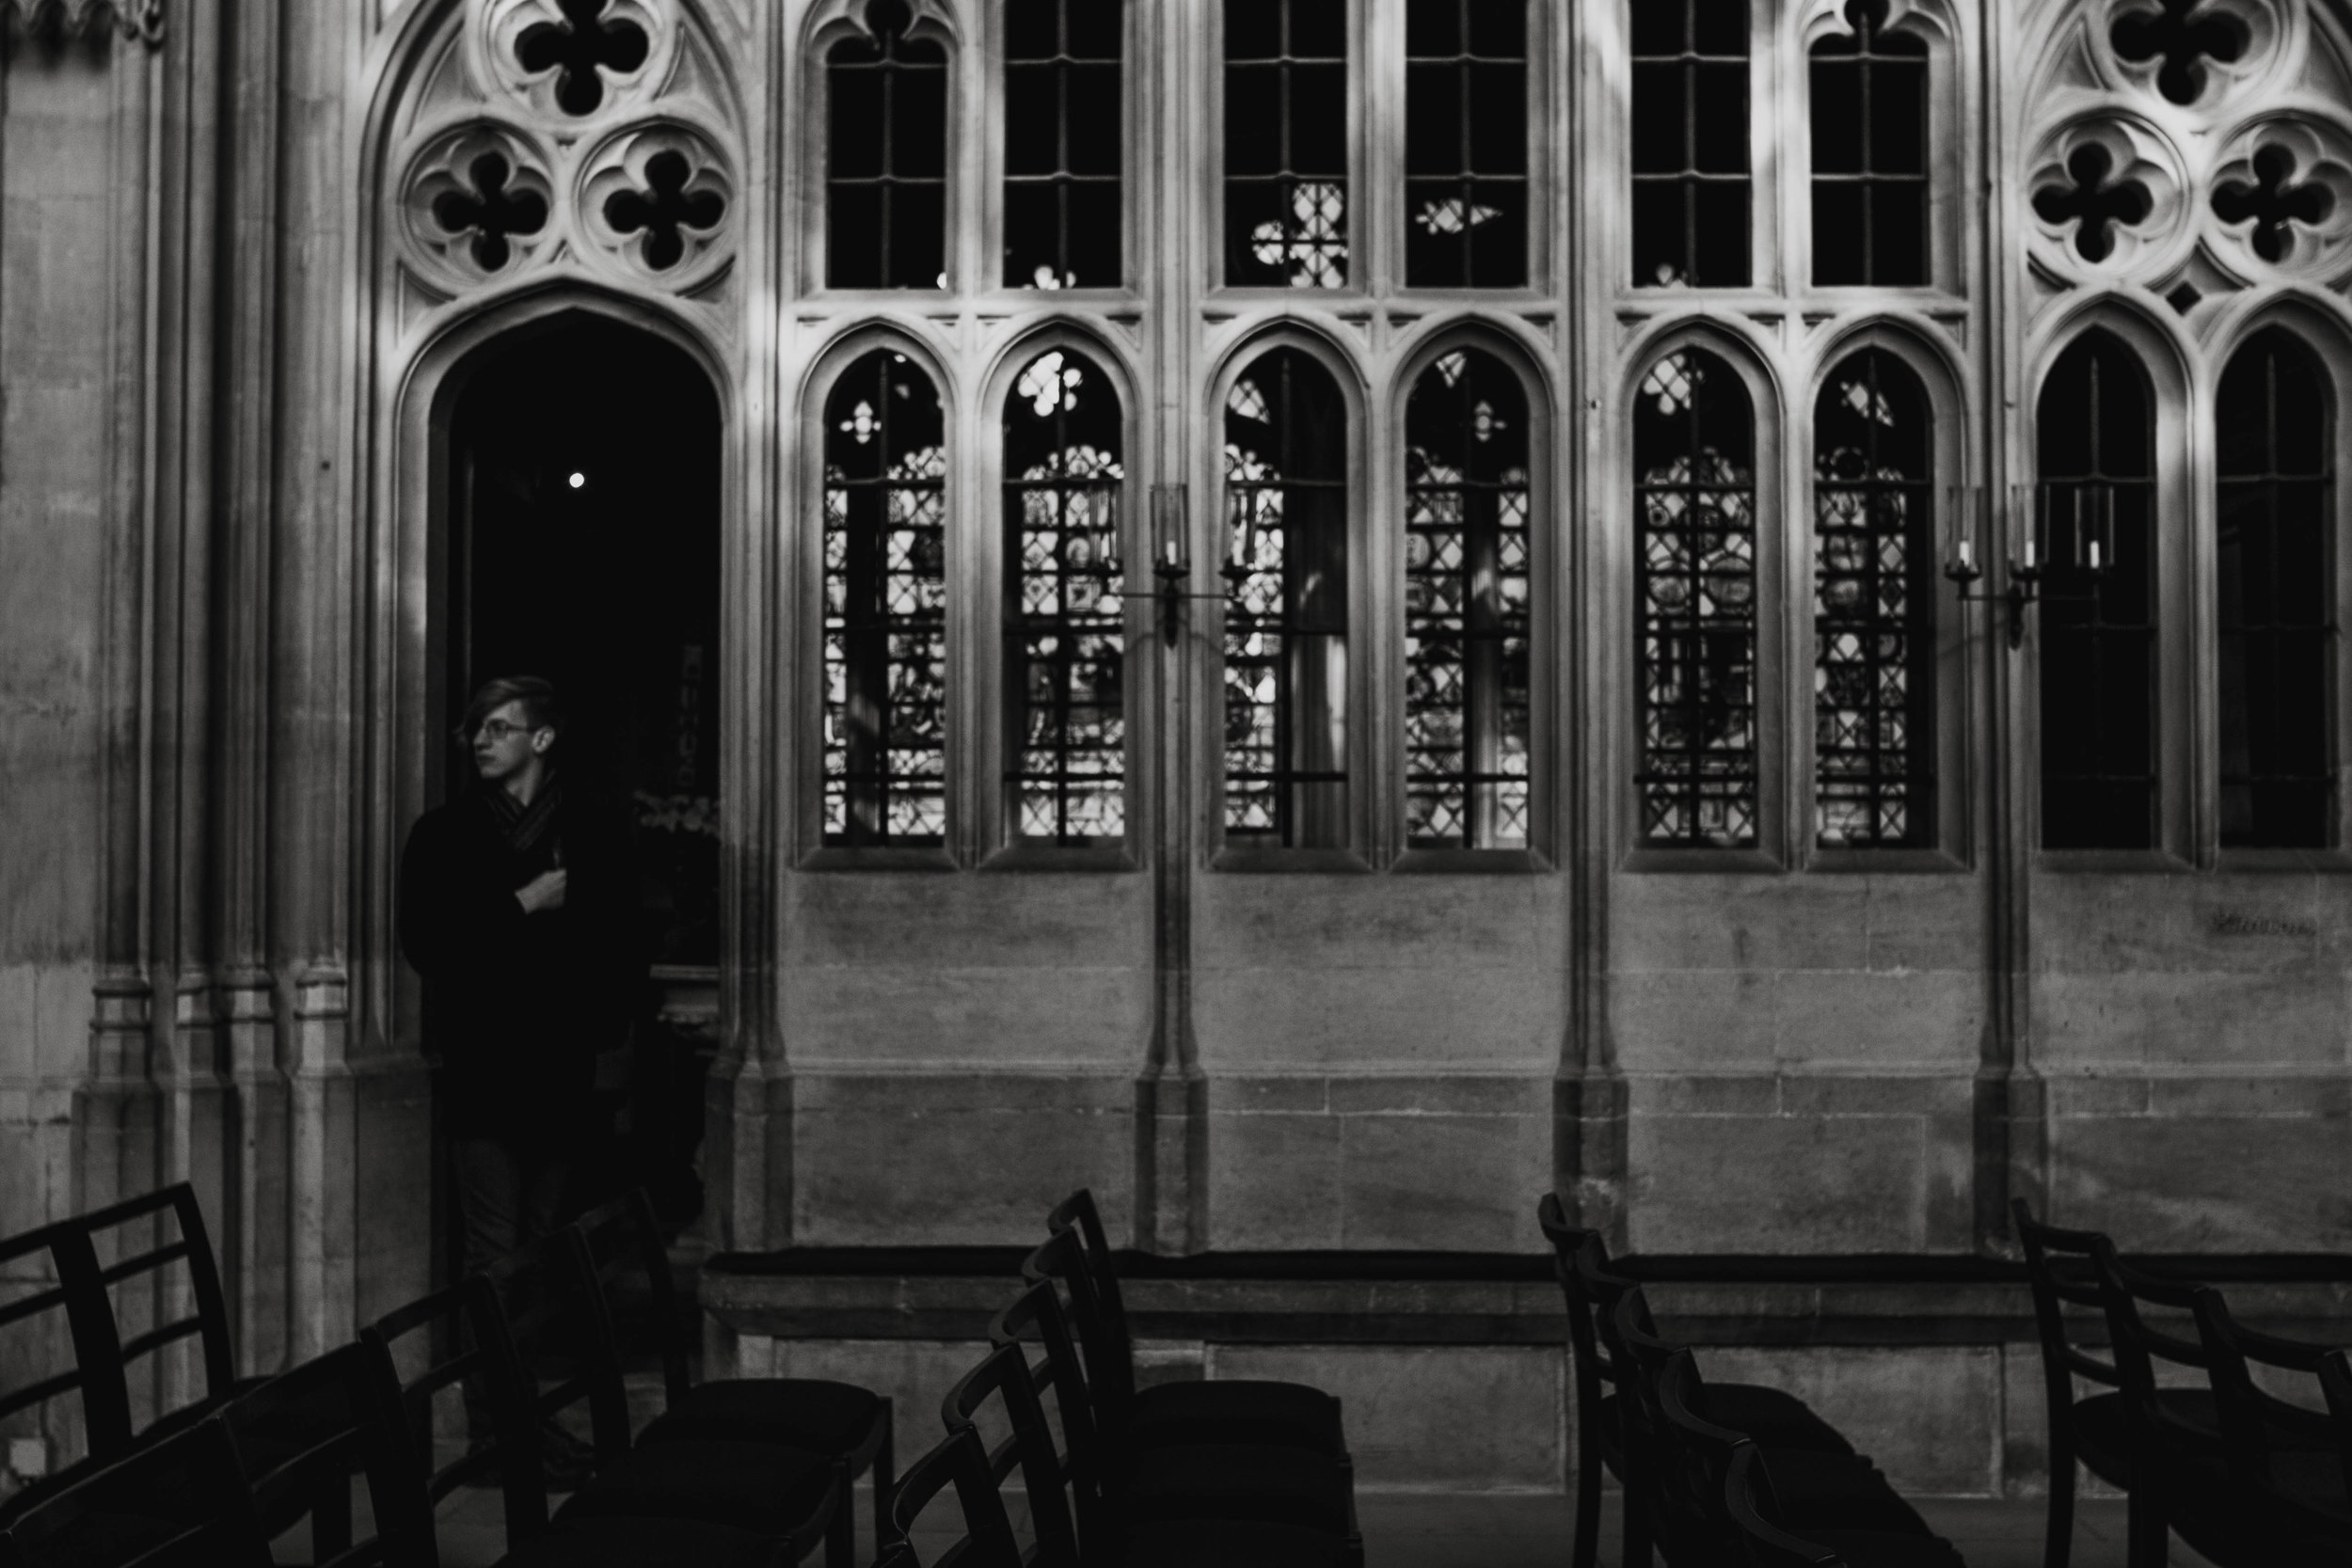 john in King's College Chapel